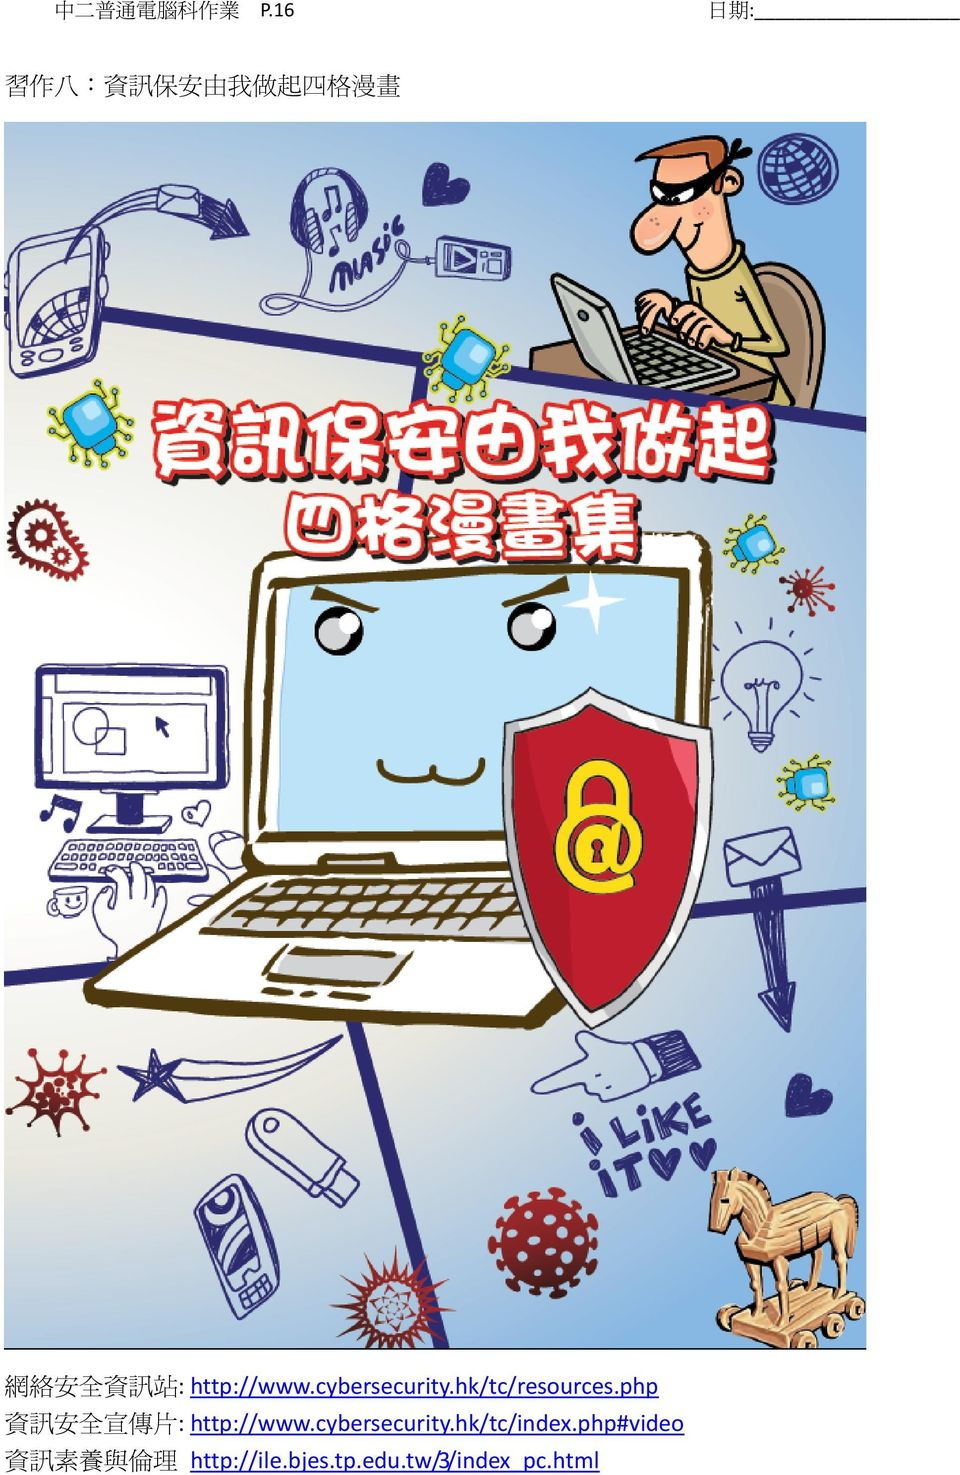 http://www.cybersecurity.hk/tc/resources.